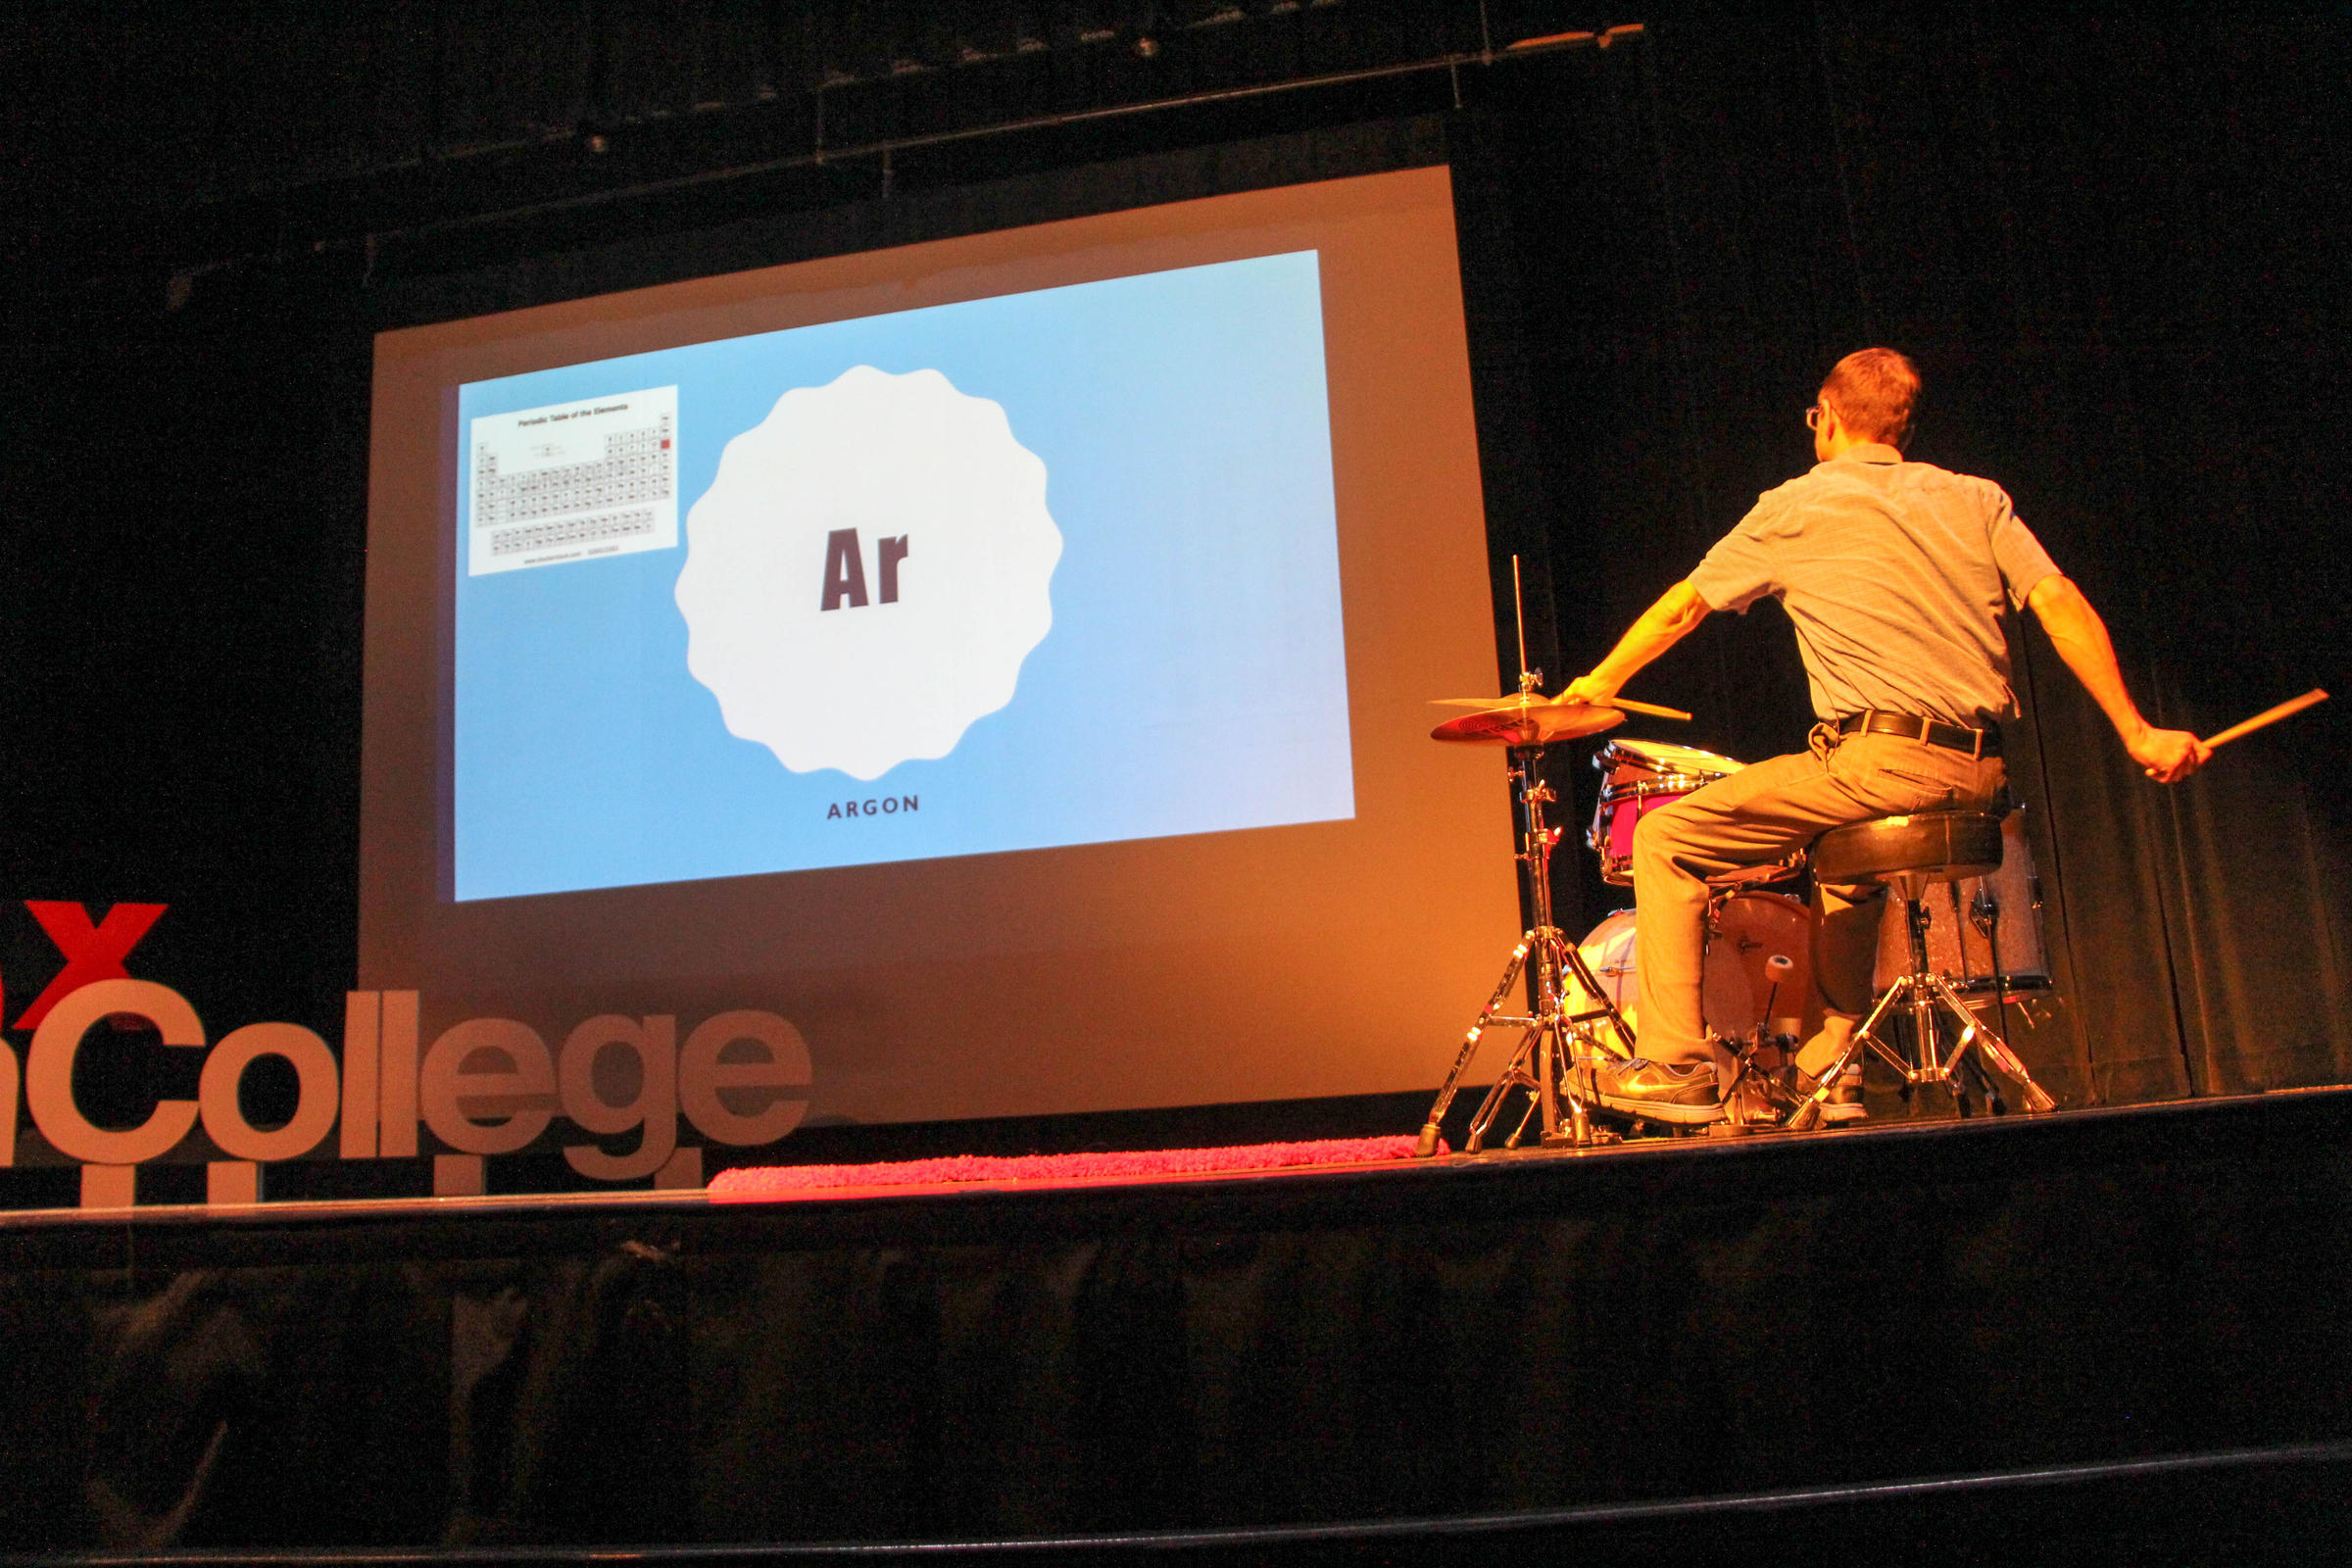 Chemistry professor drums the periodic table of elements jefferson college chemistry professor wesley whitfield performed a percussive interpretation of the periodic table of elements at a tedx event the school urtaz Choice Image